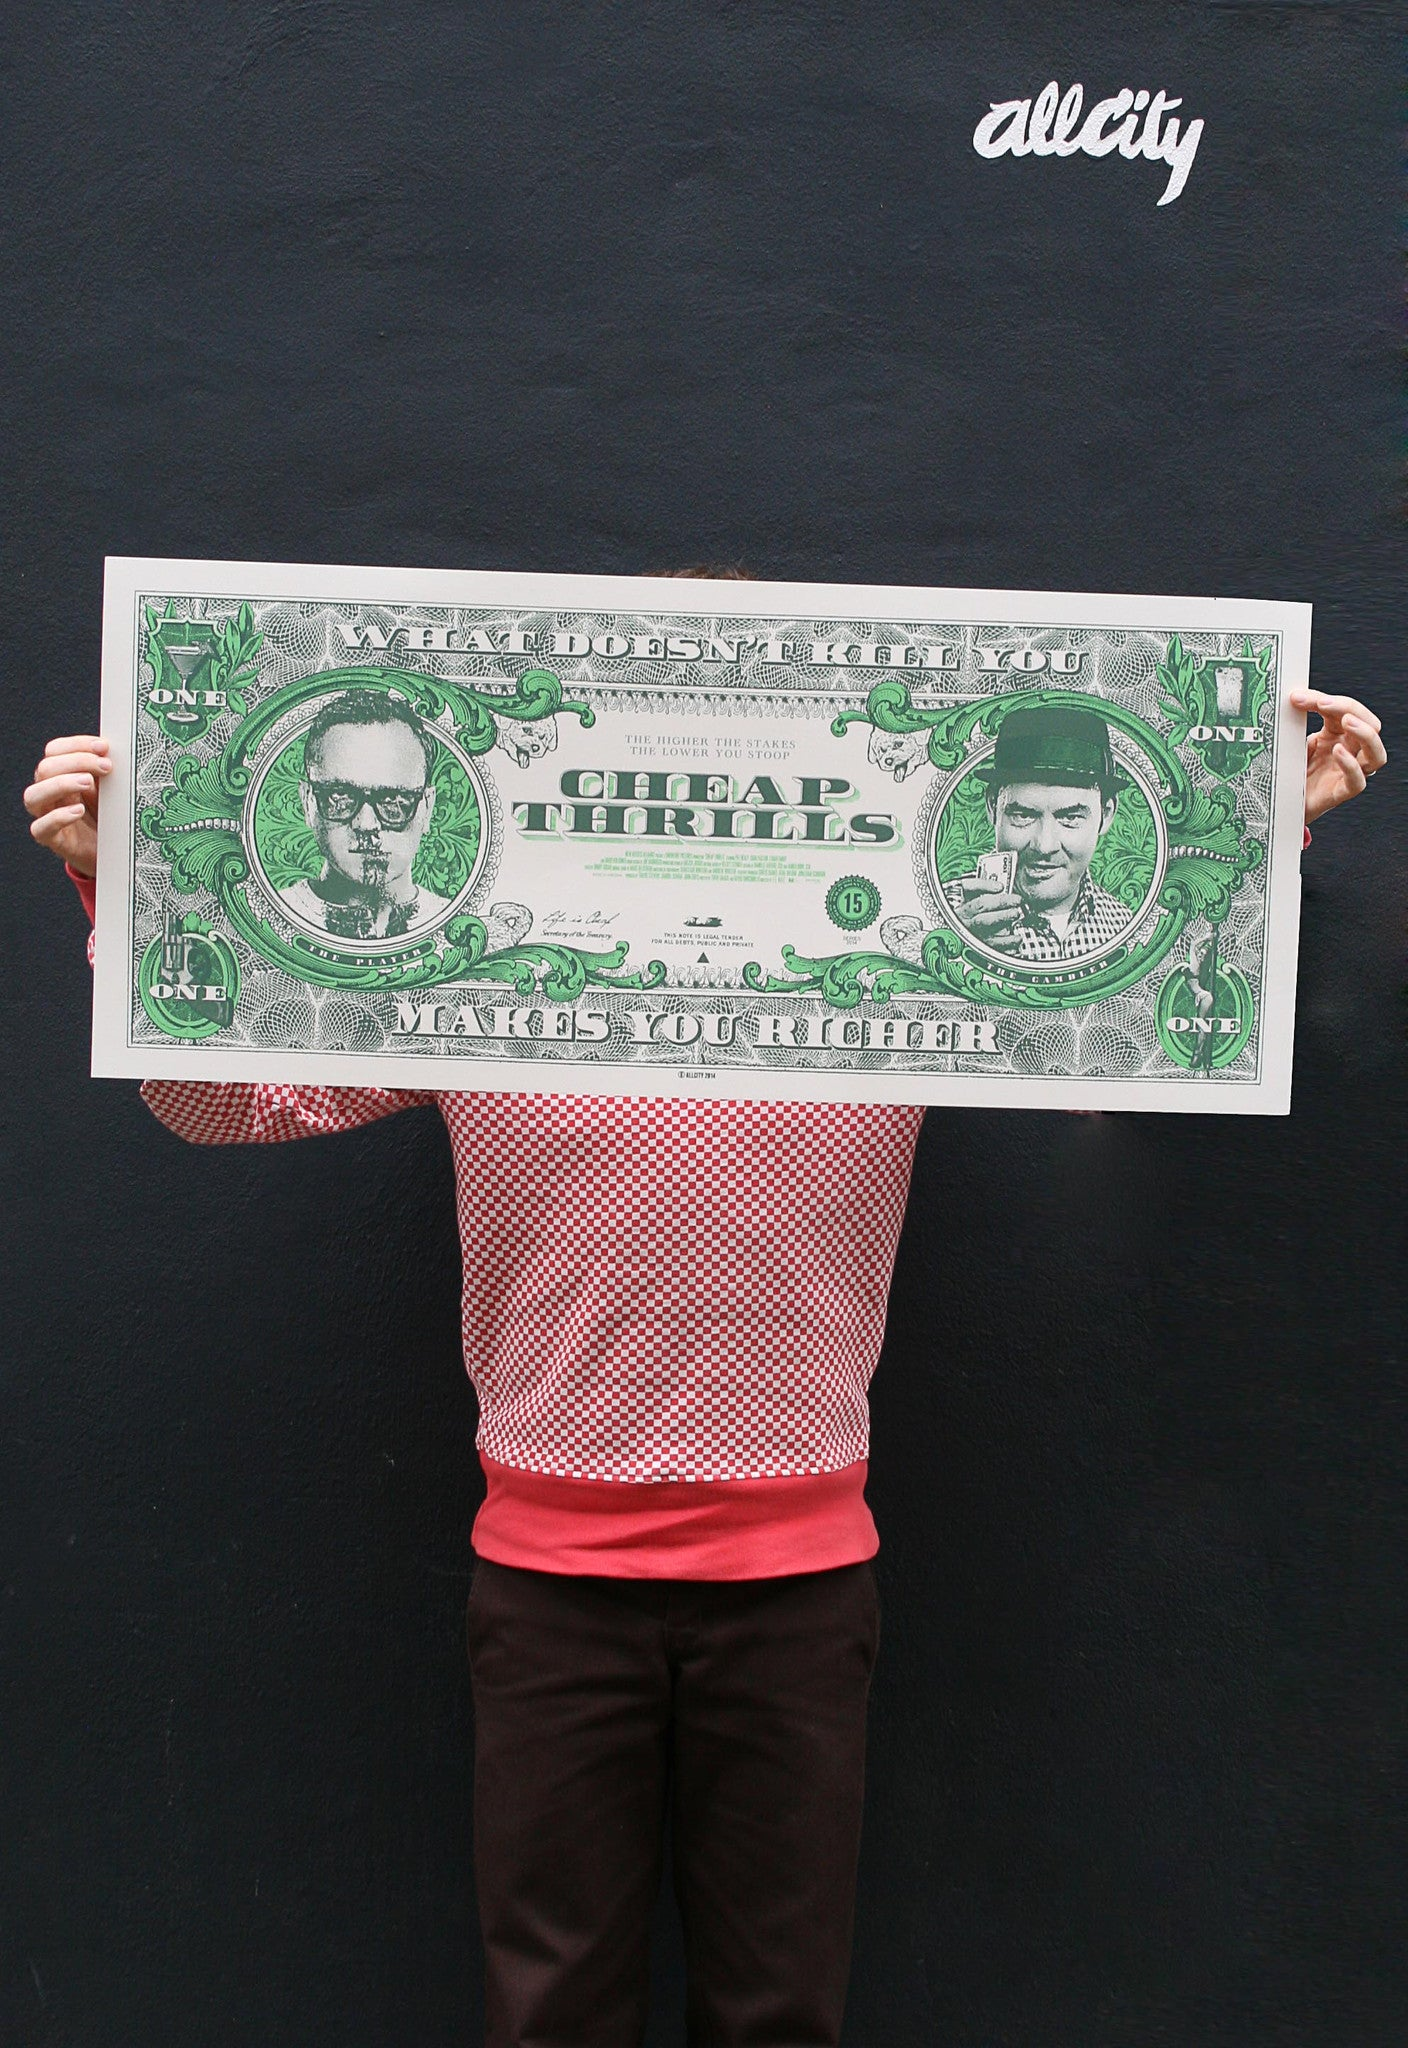 CHEAP THRILLS - Special Edition Dollars